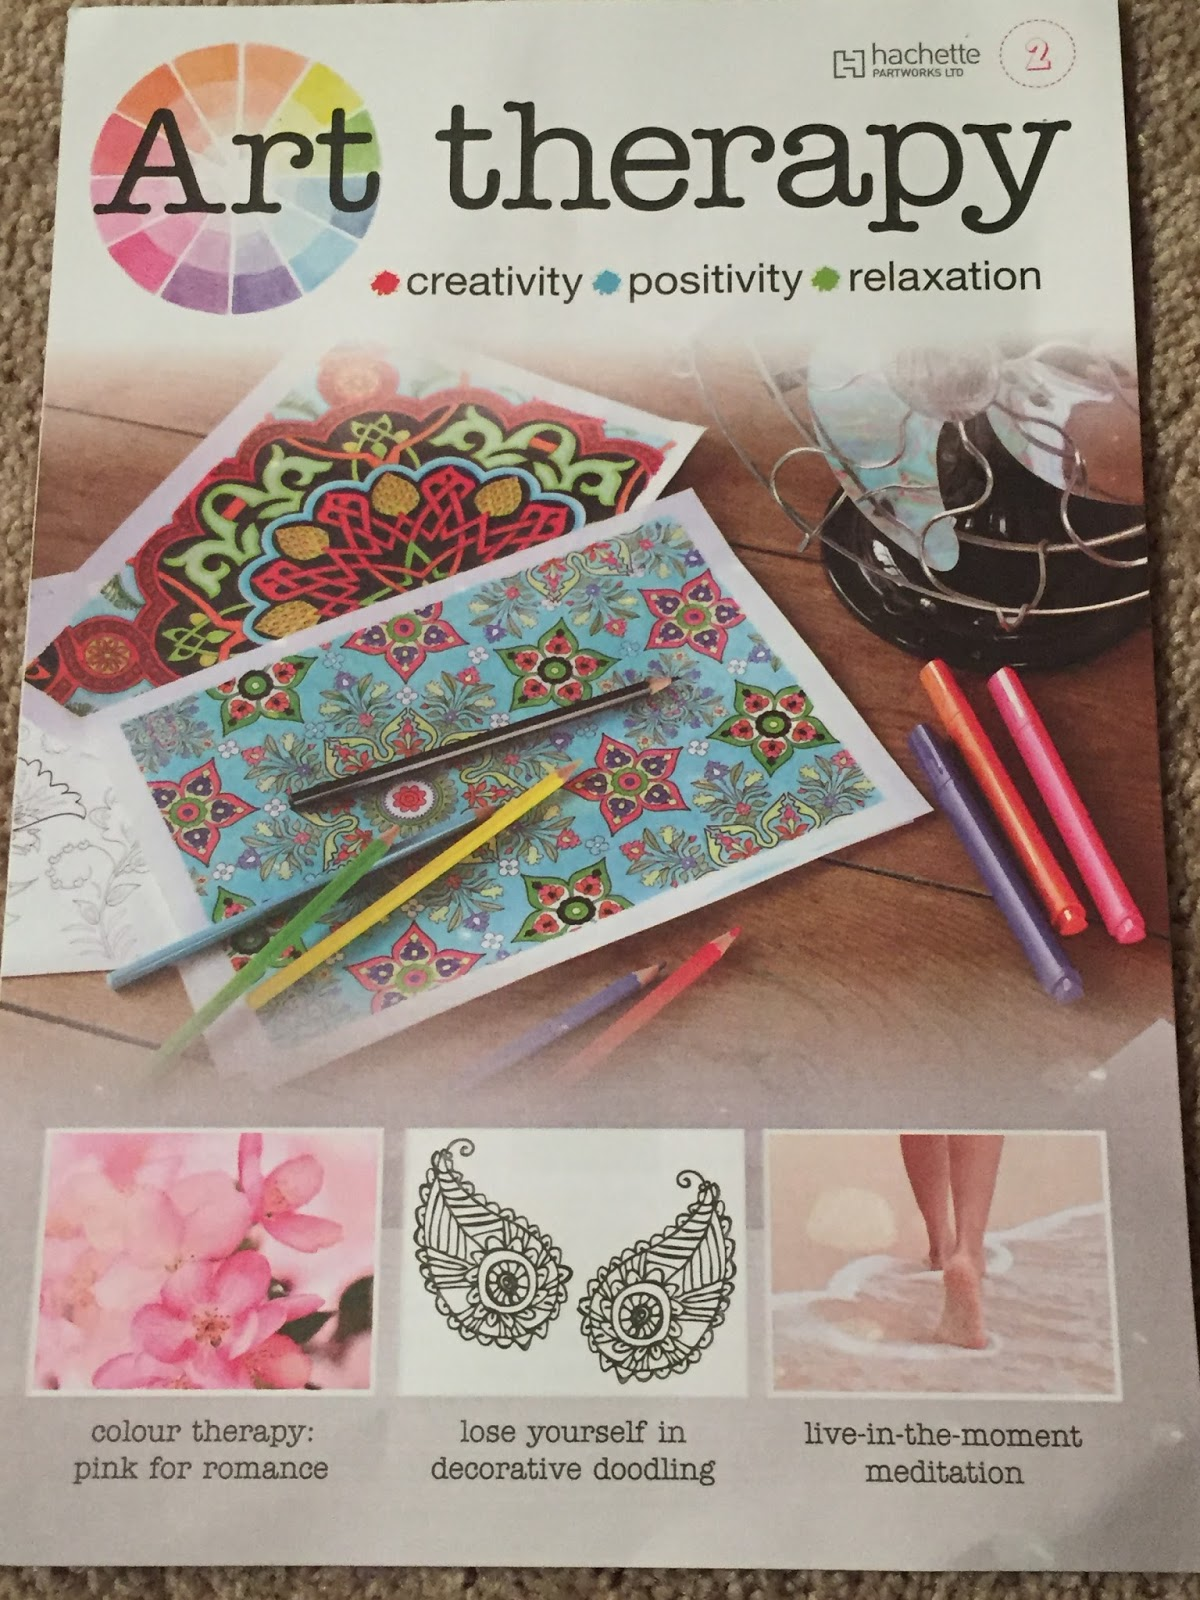 Colour therapy for relaxation - Anyone From Groups Or Communities To Individuals To Families To People In All Sorts Of Relationships Can Use Art As Therapy Coloring Encourages Hand Eye